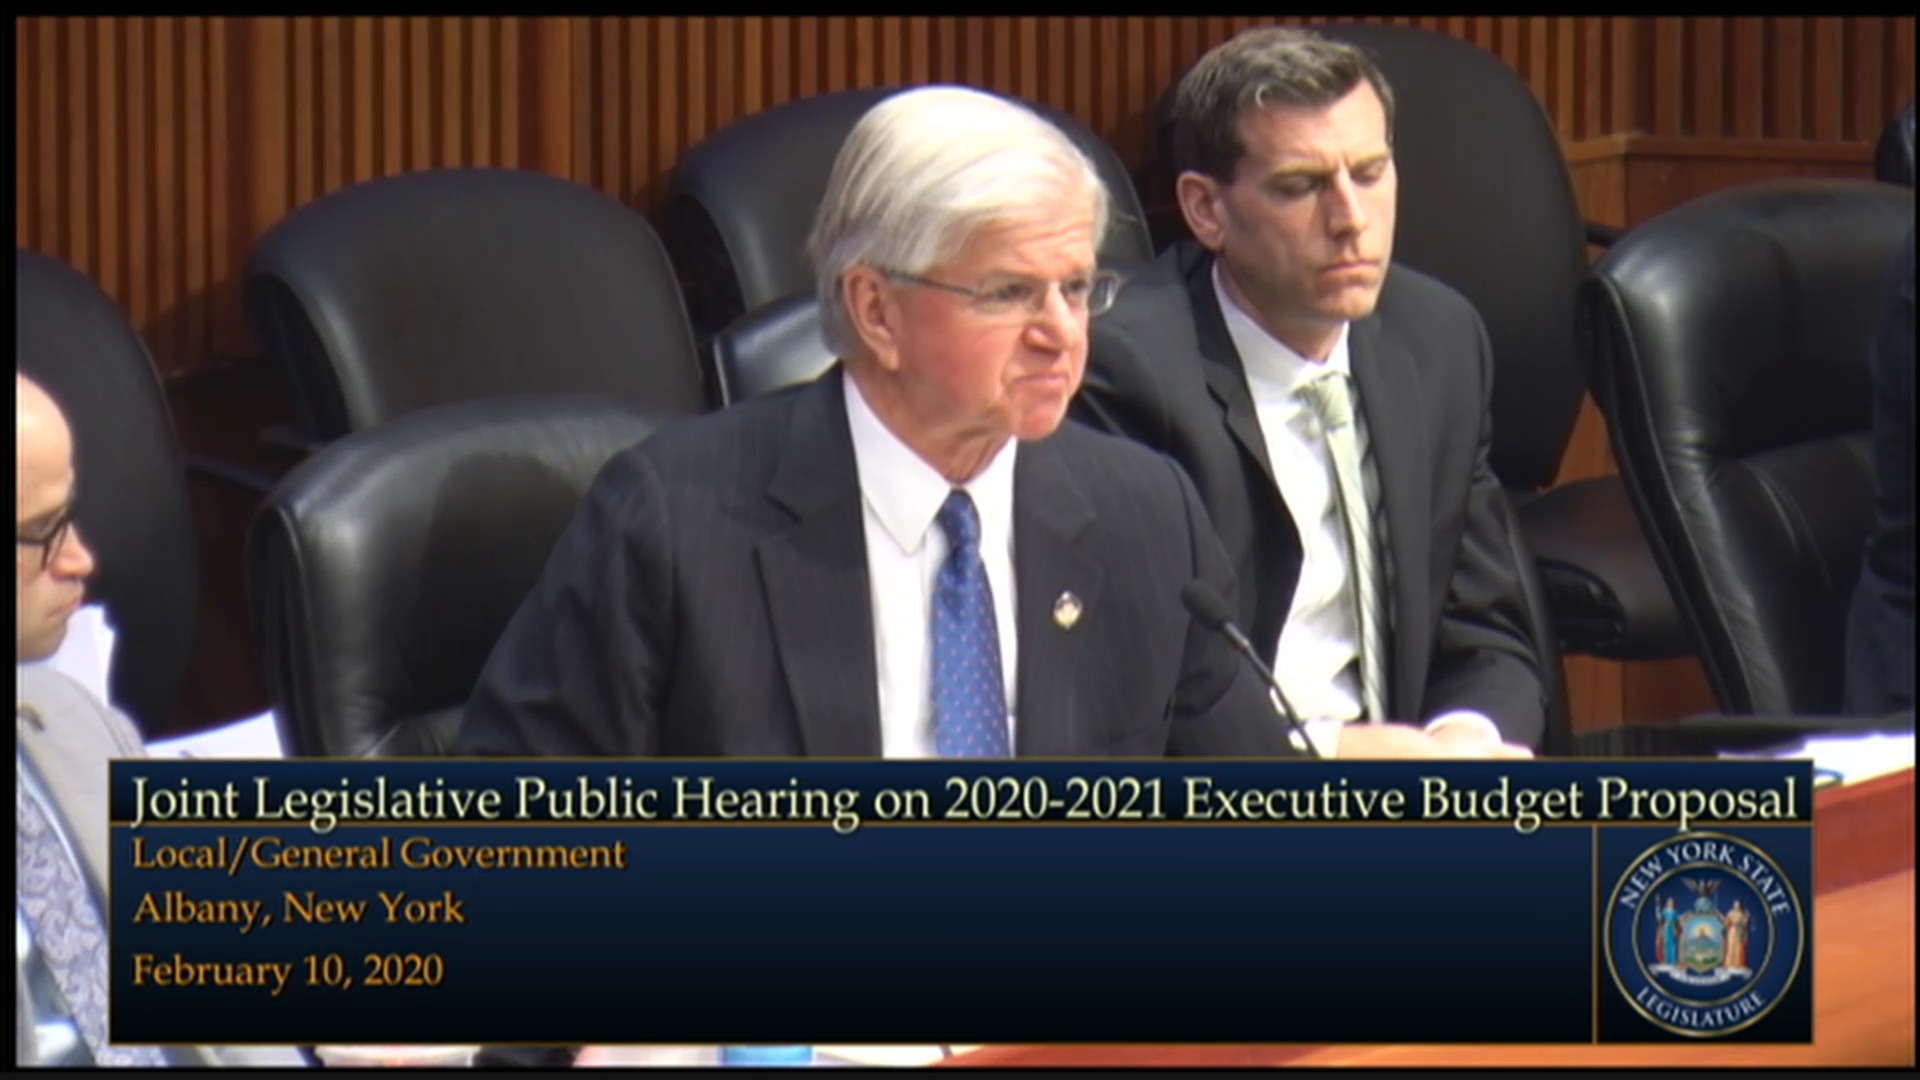 2020 Joint Budget Hearing on Local/General Government